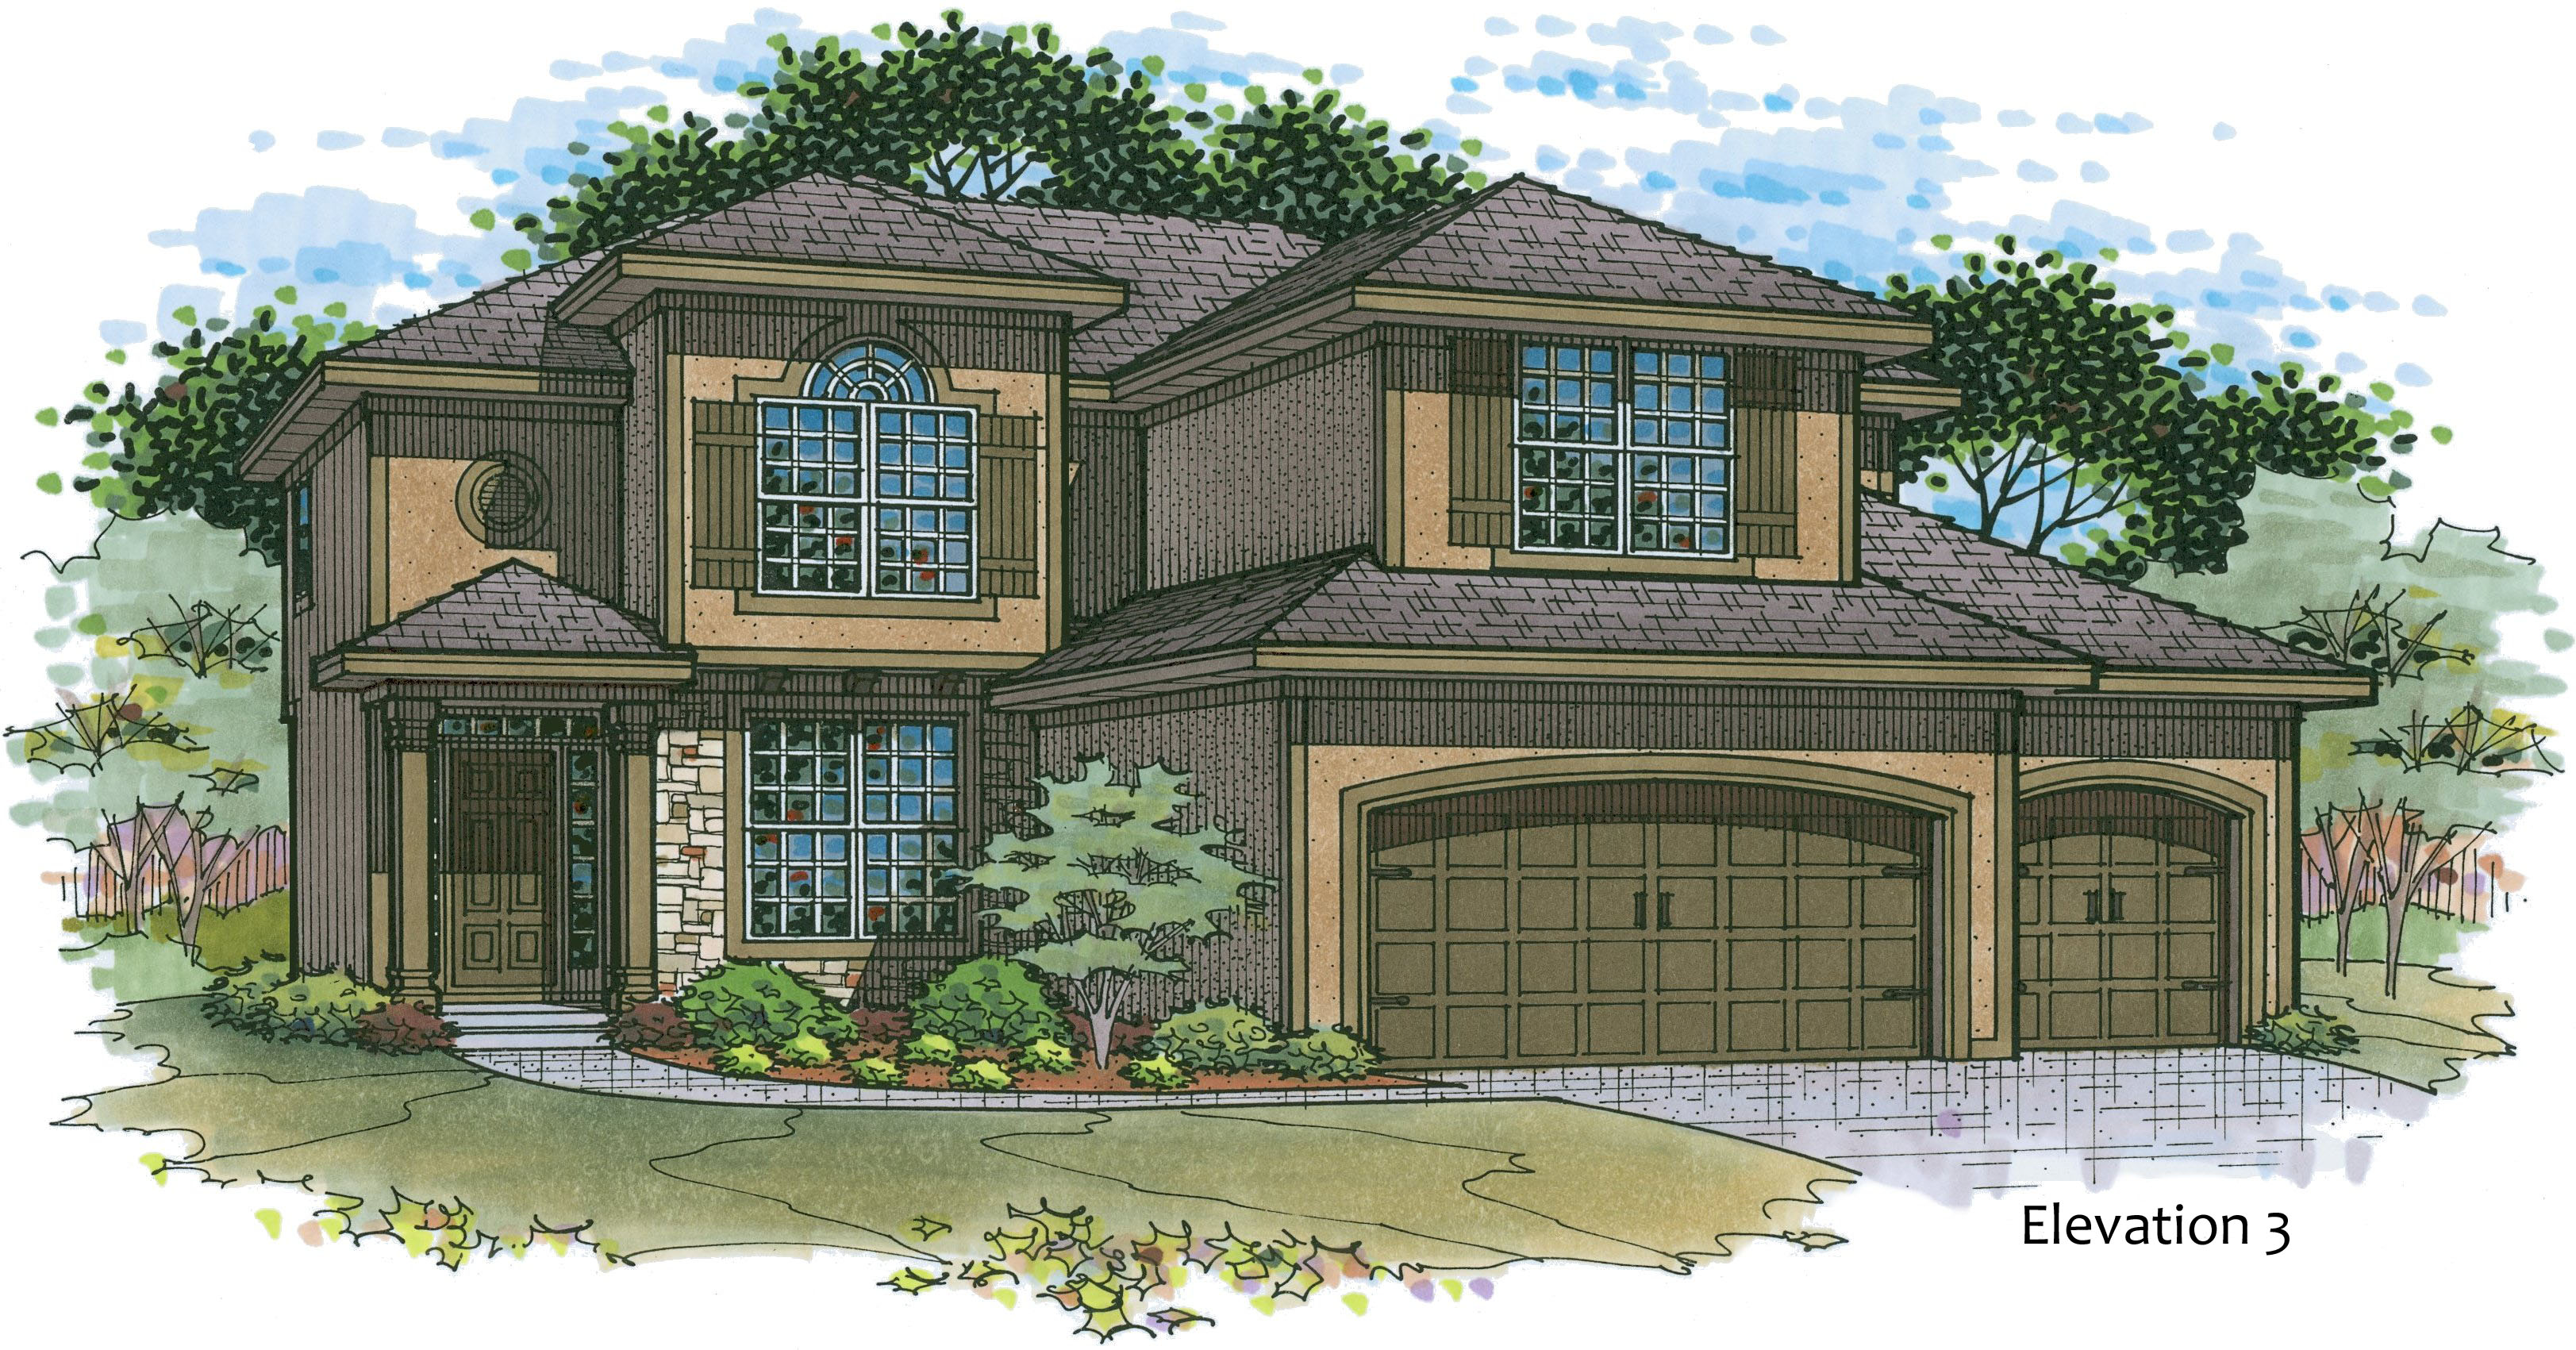 Madison elevation 3 color rendering